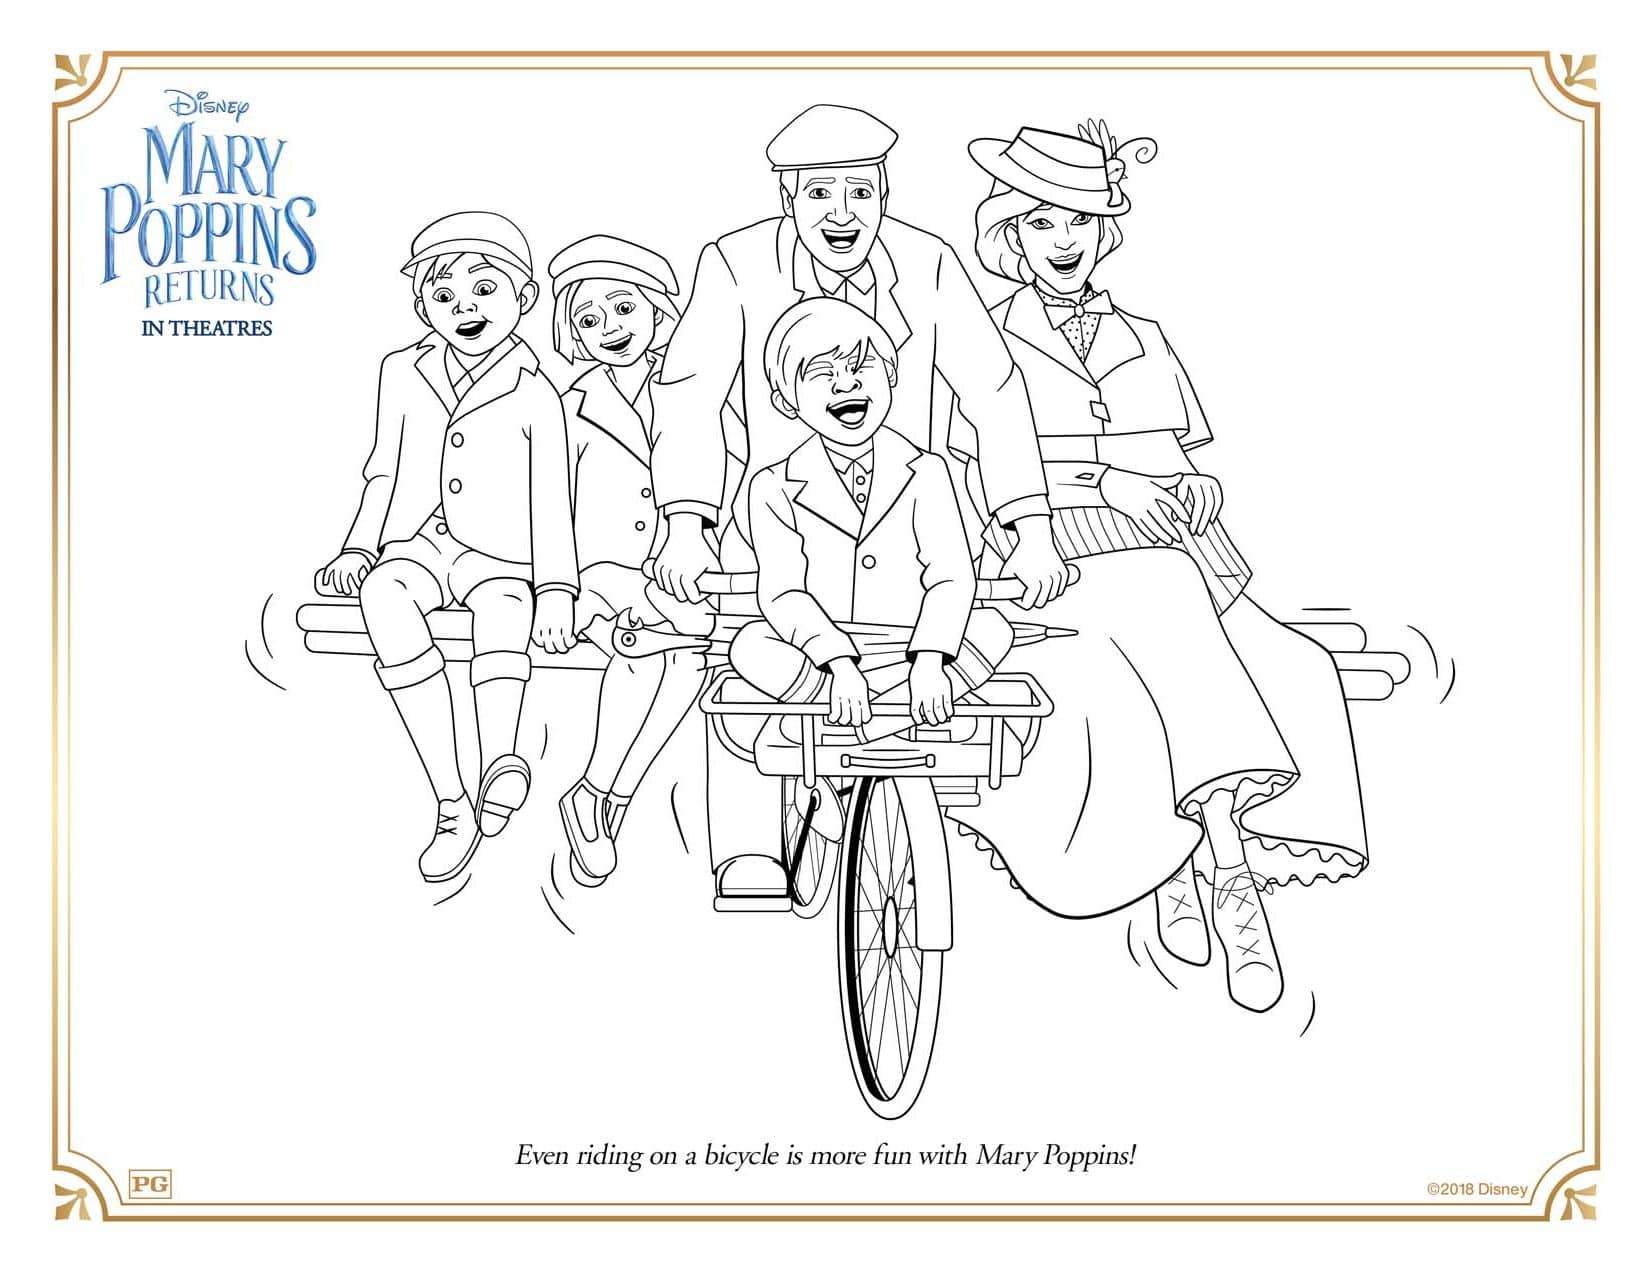 Mary Poppins Returns Bicycle Fun Coloring Pages and Activity Sheets